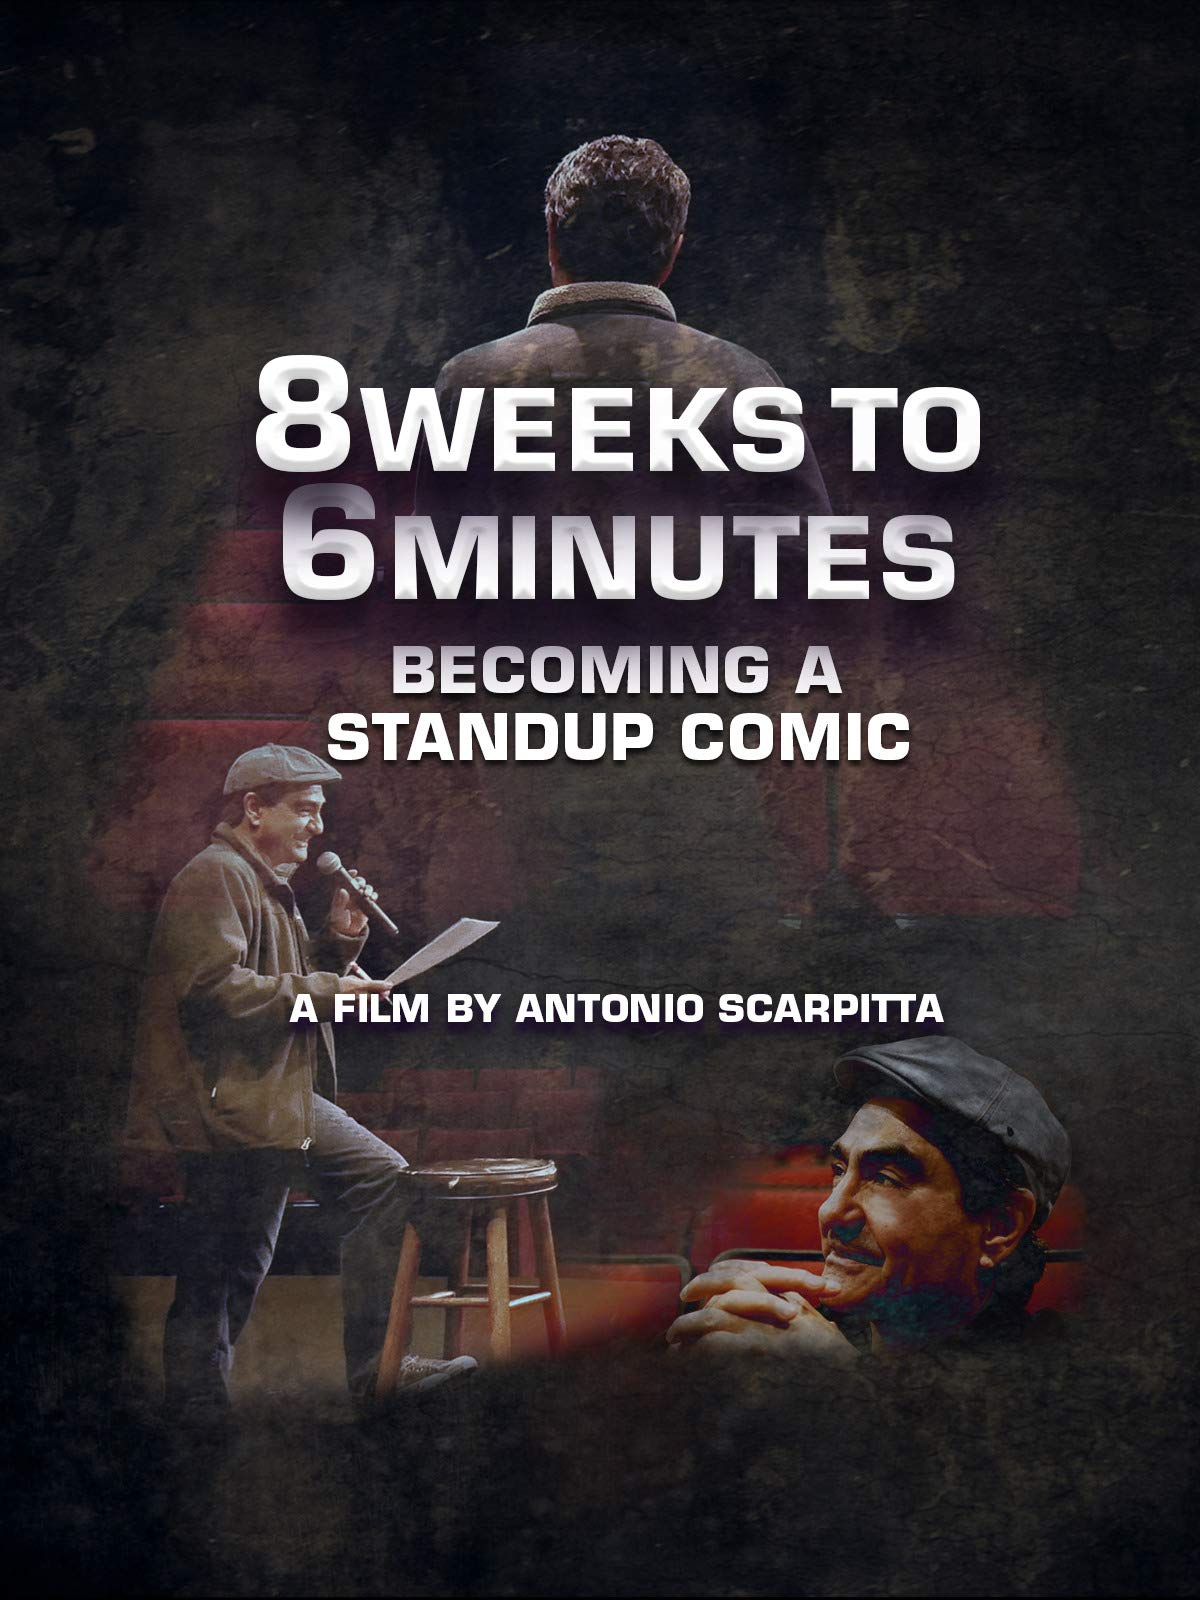 8 Weeks to 6 Minutes, becoming a standup comic